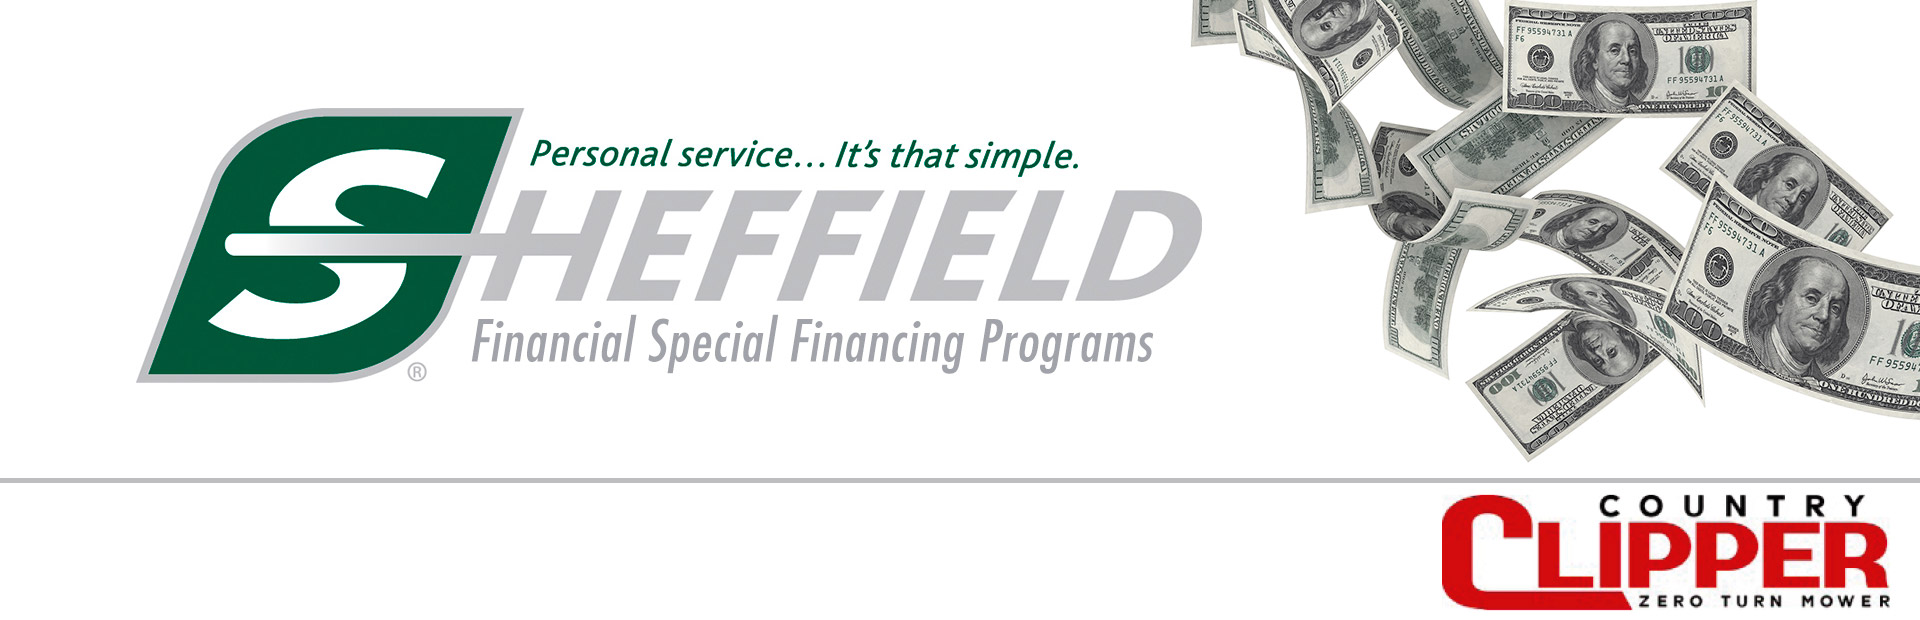 Country Clipper: Sheffield Financial Programs